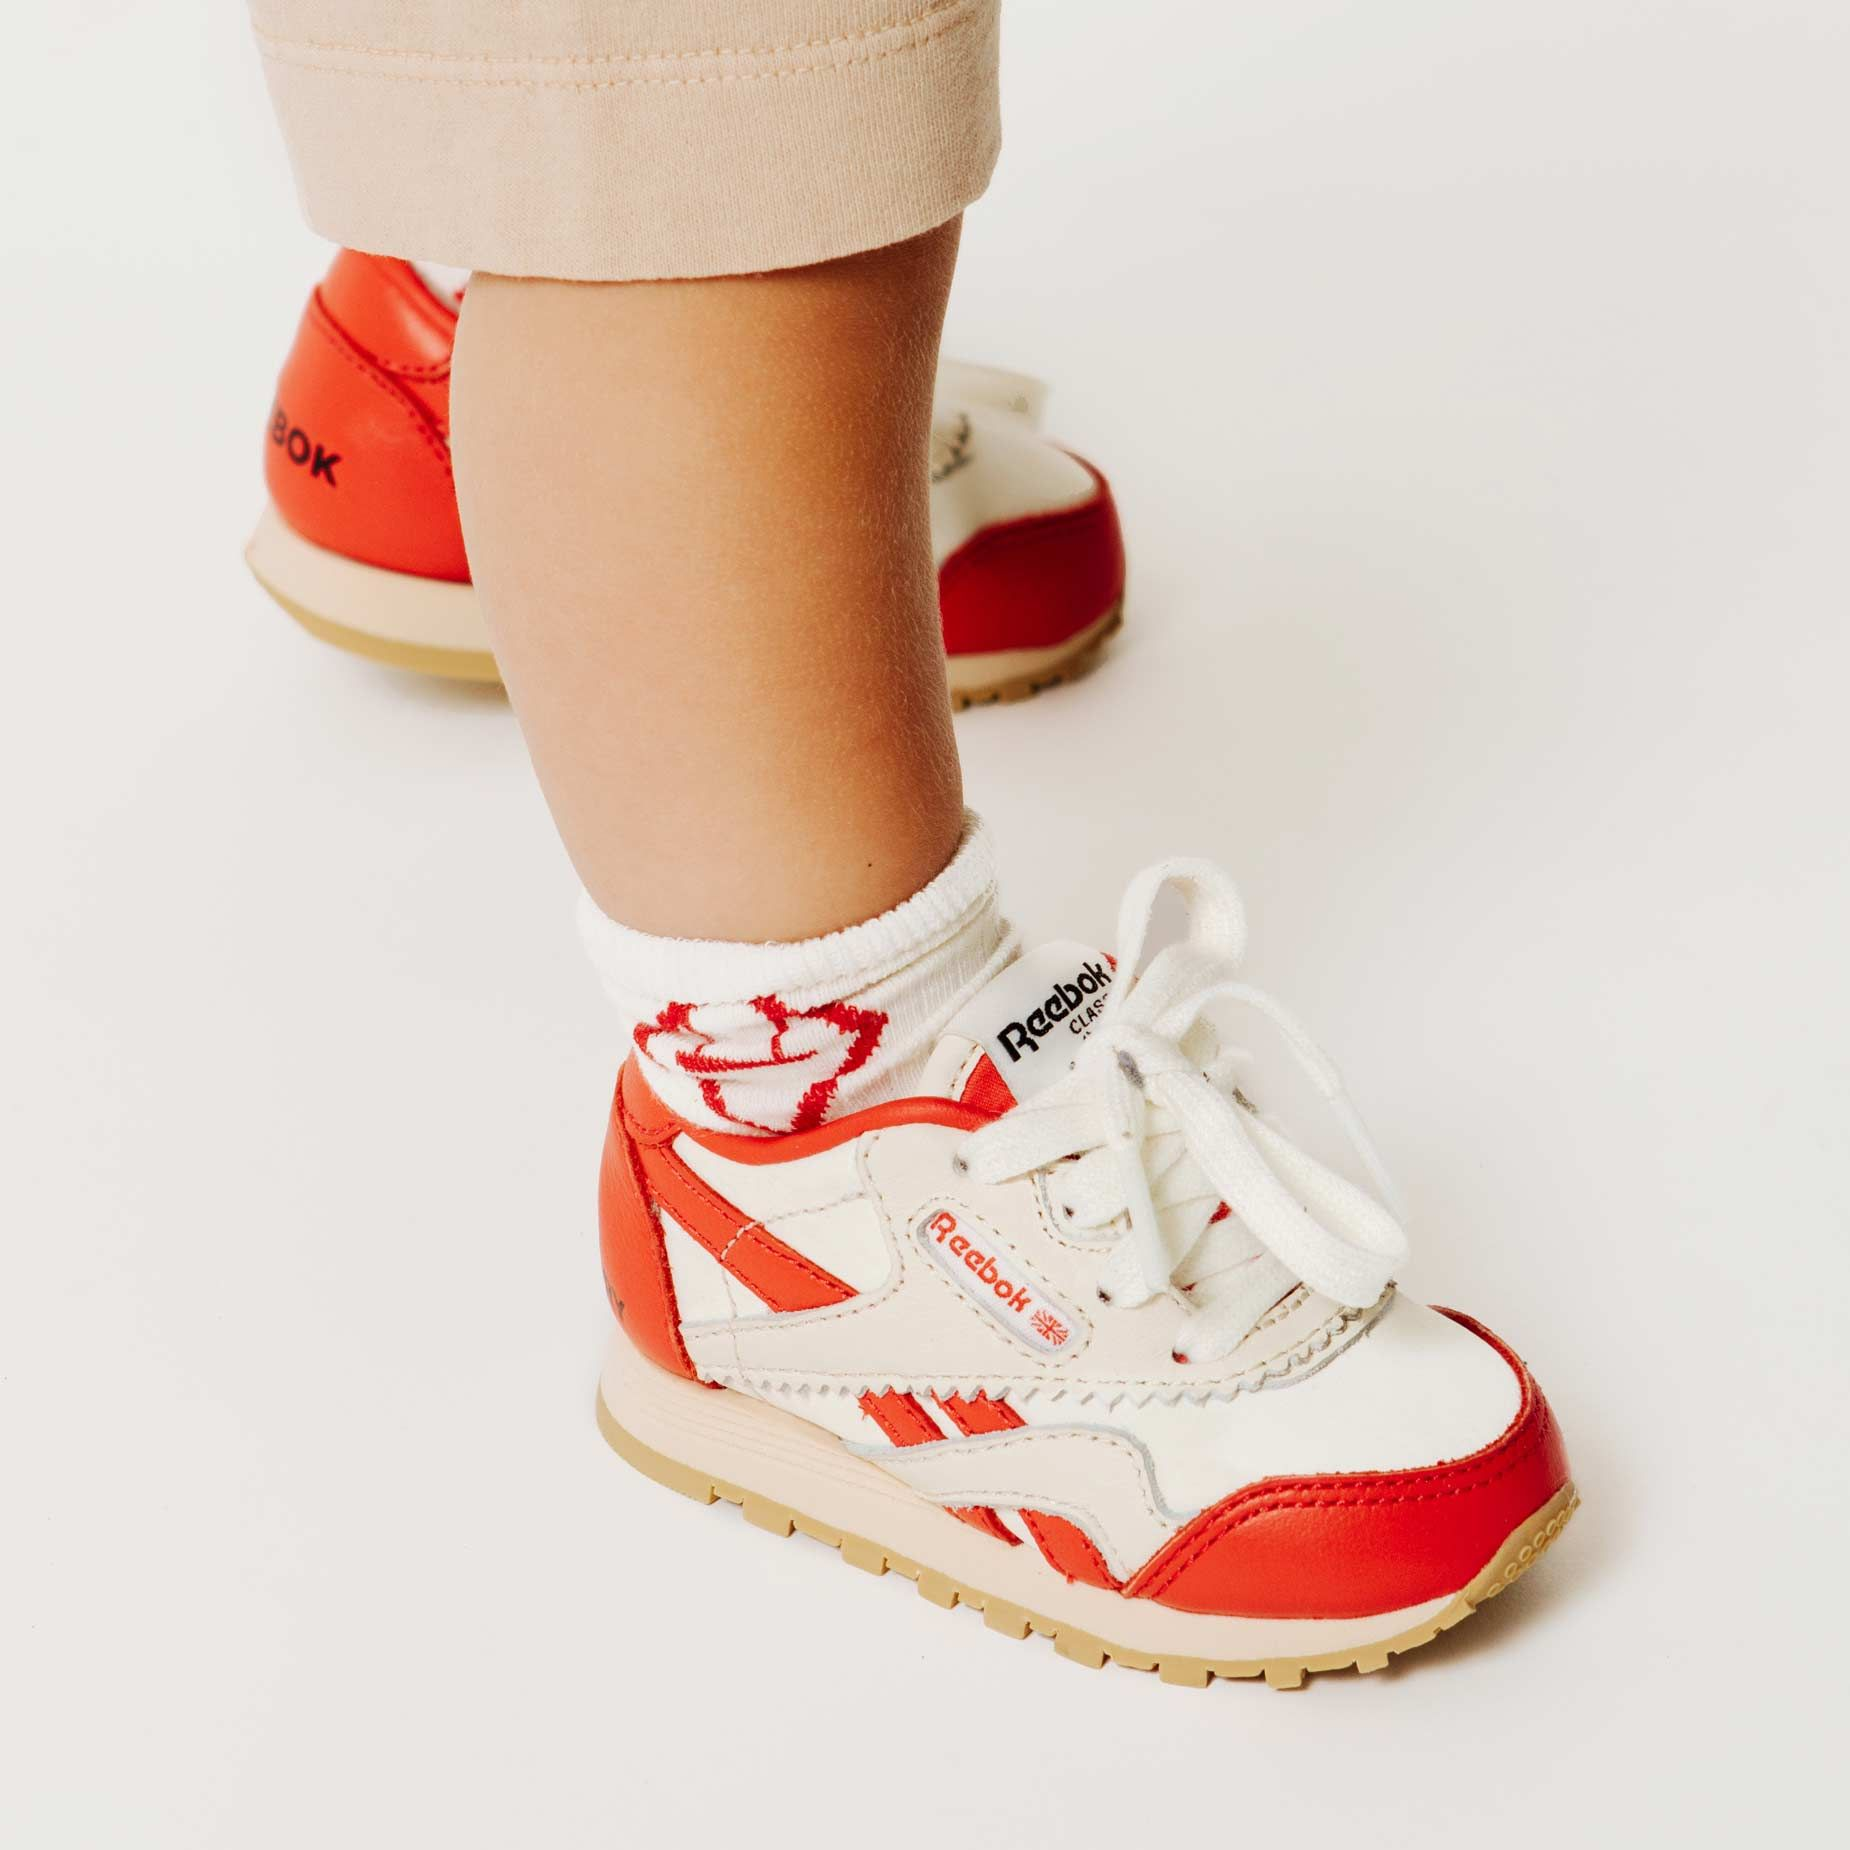 Reebok x The Animals Observatory Classic Nylon Red Baby img-6